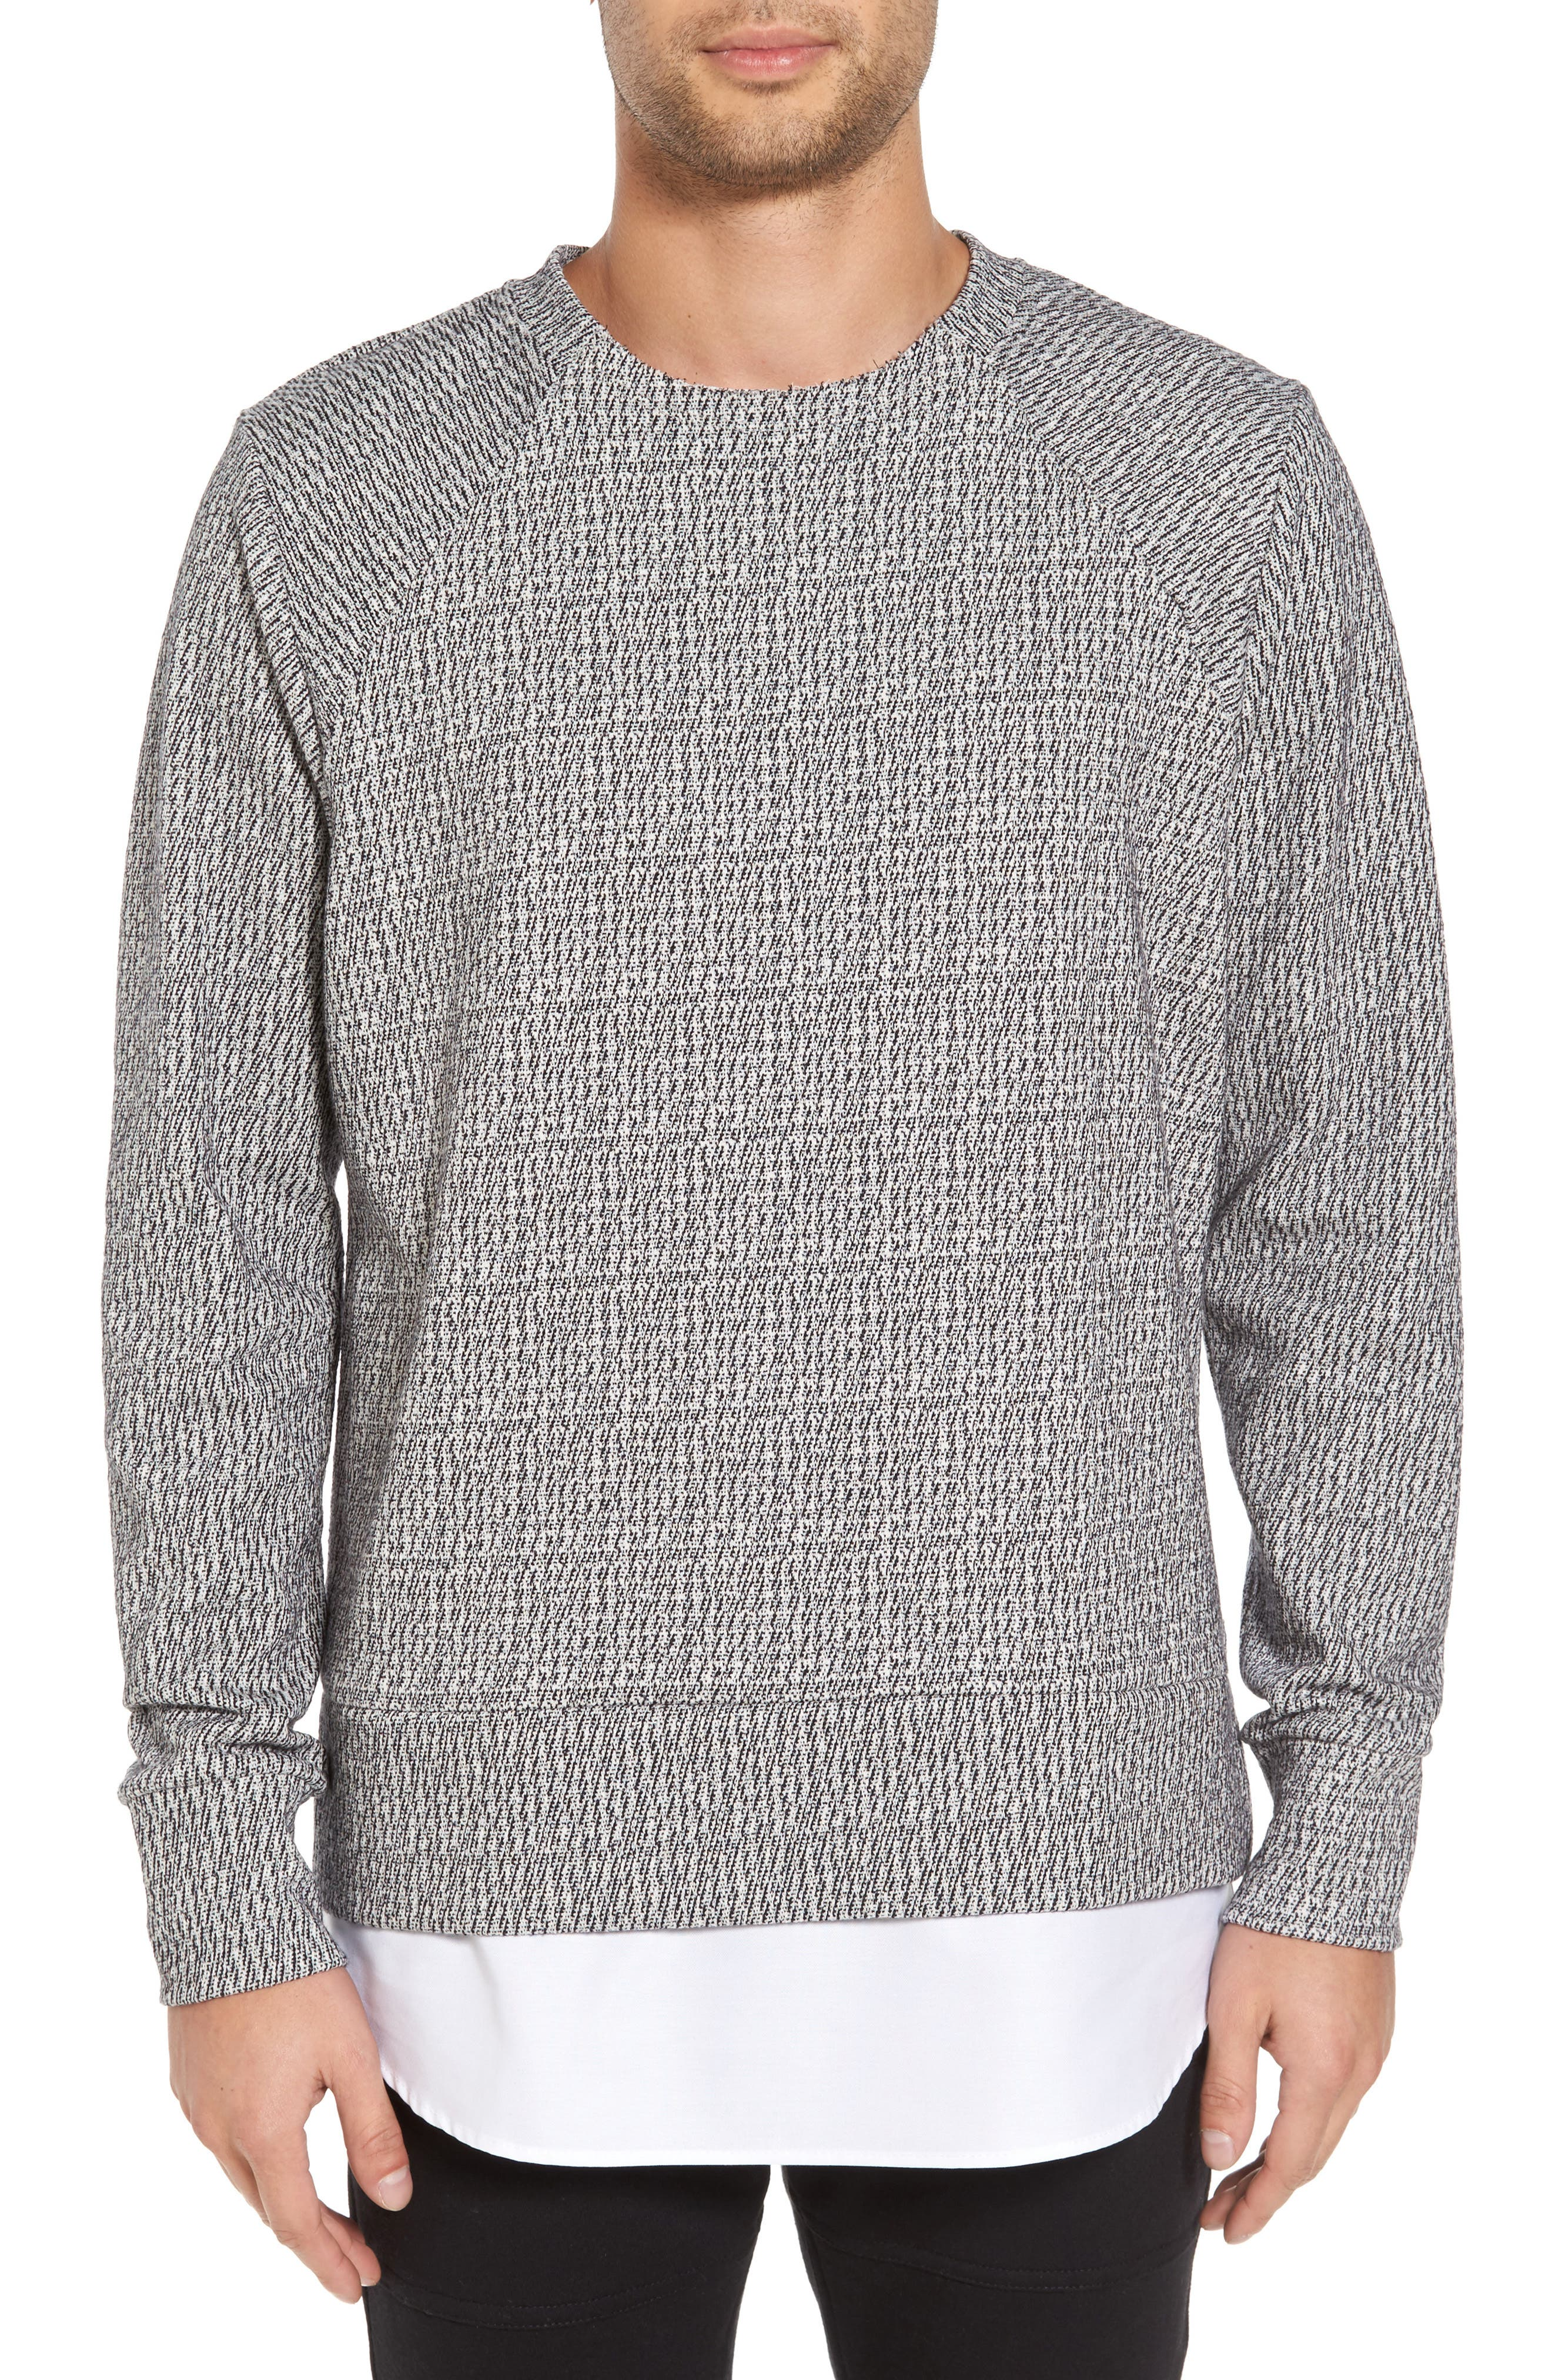 Double Layer Crewneck Sweater,                             Main thumbnail 1, color,                             020